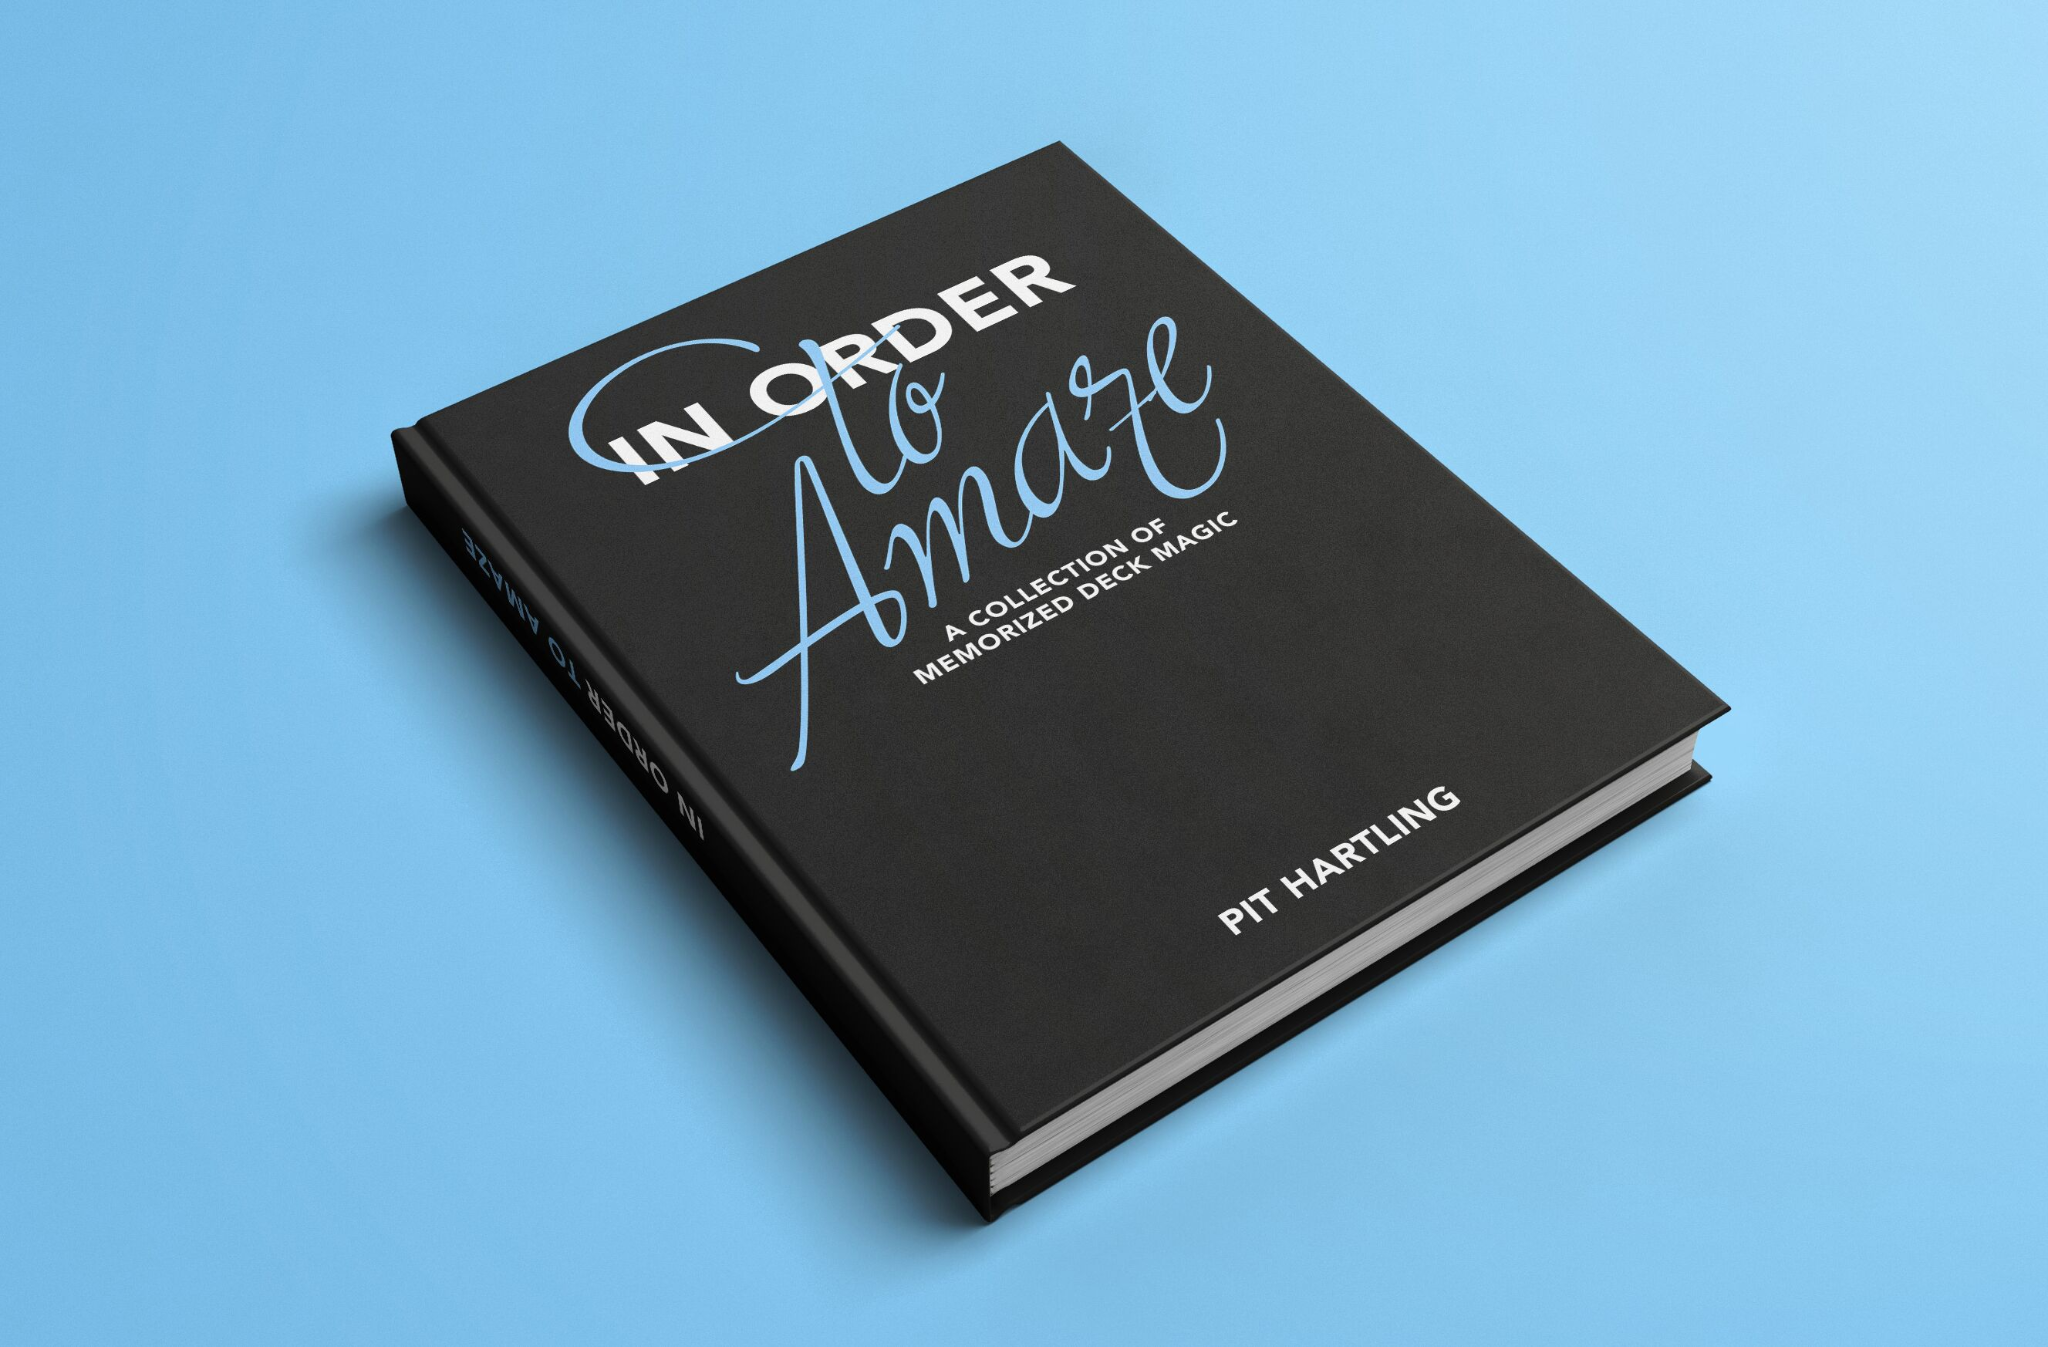 In Order to Amaze by Pit Hartling